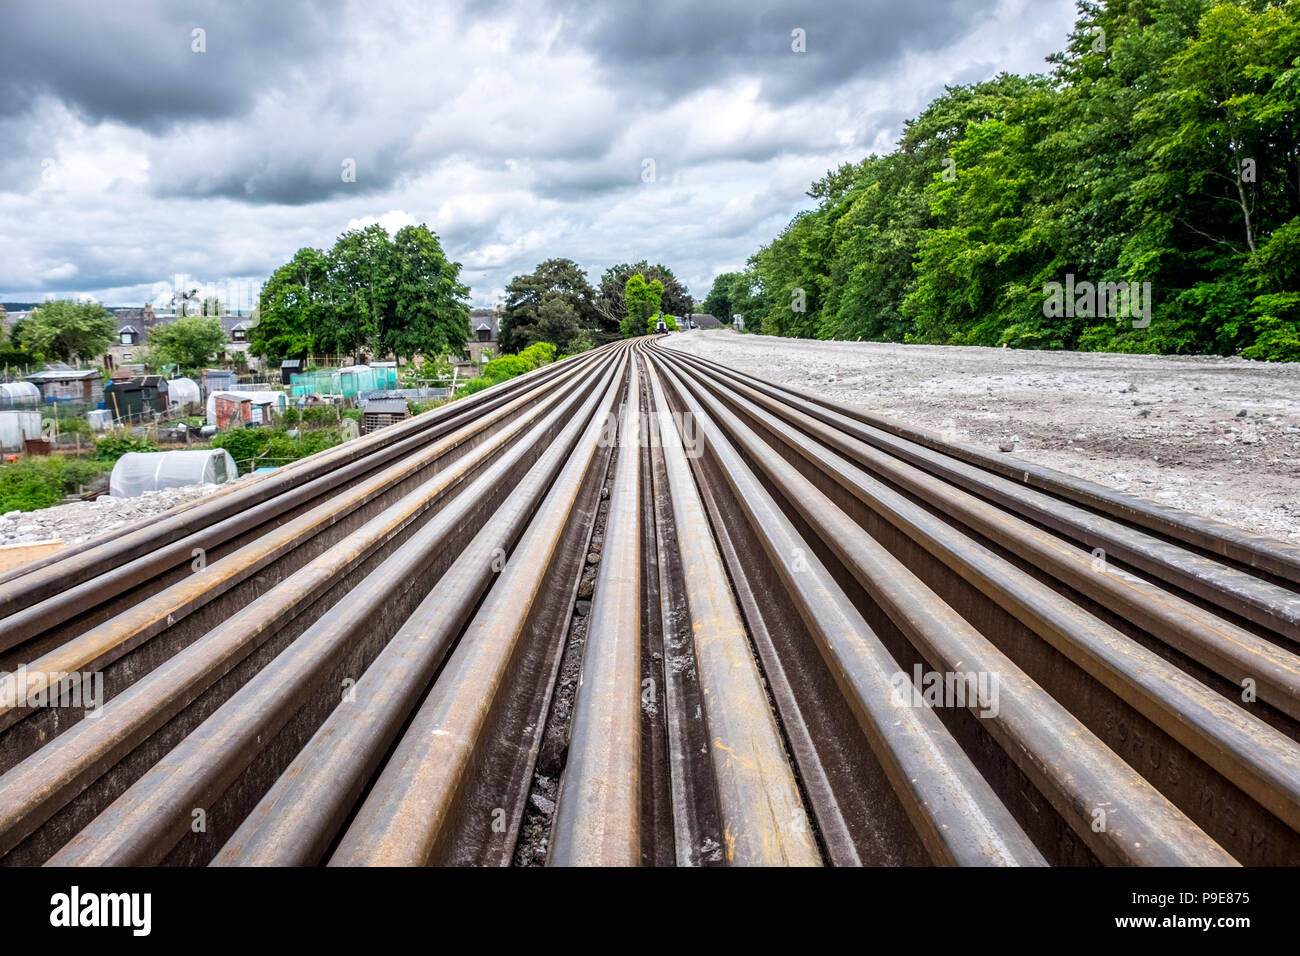 rail tracks disappearing into distance - Stock Image